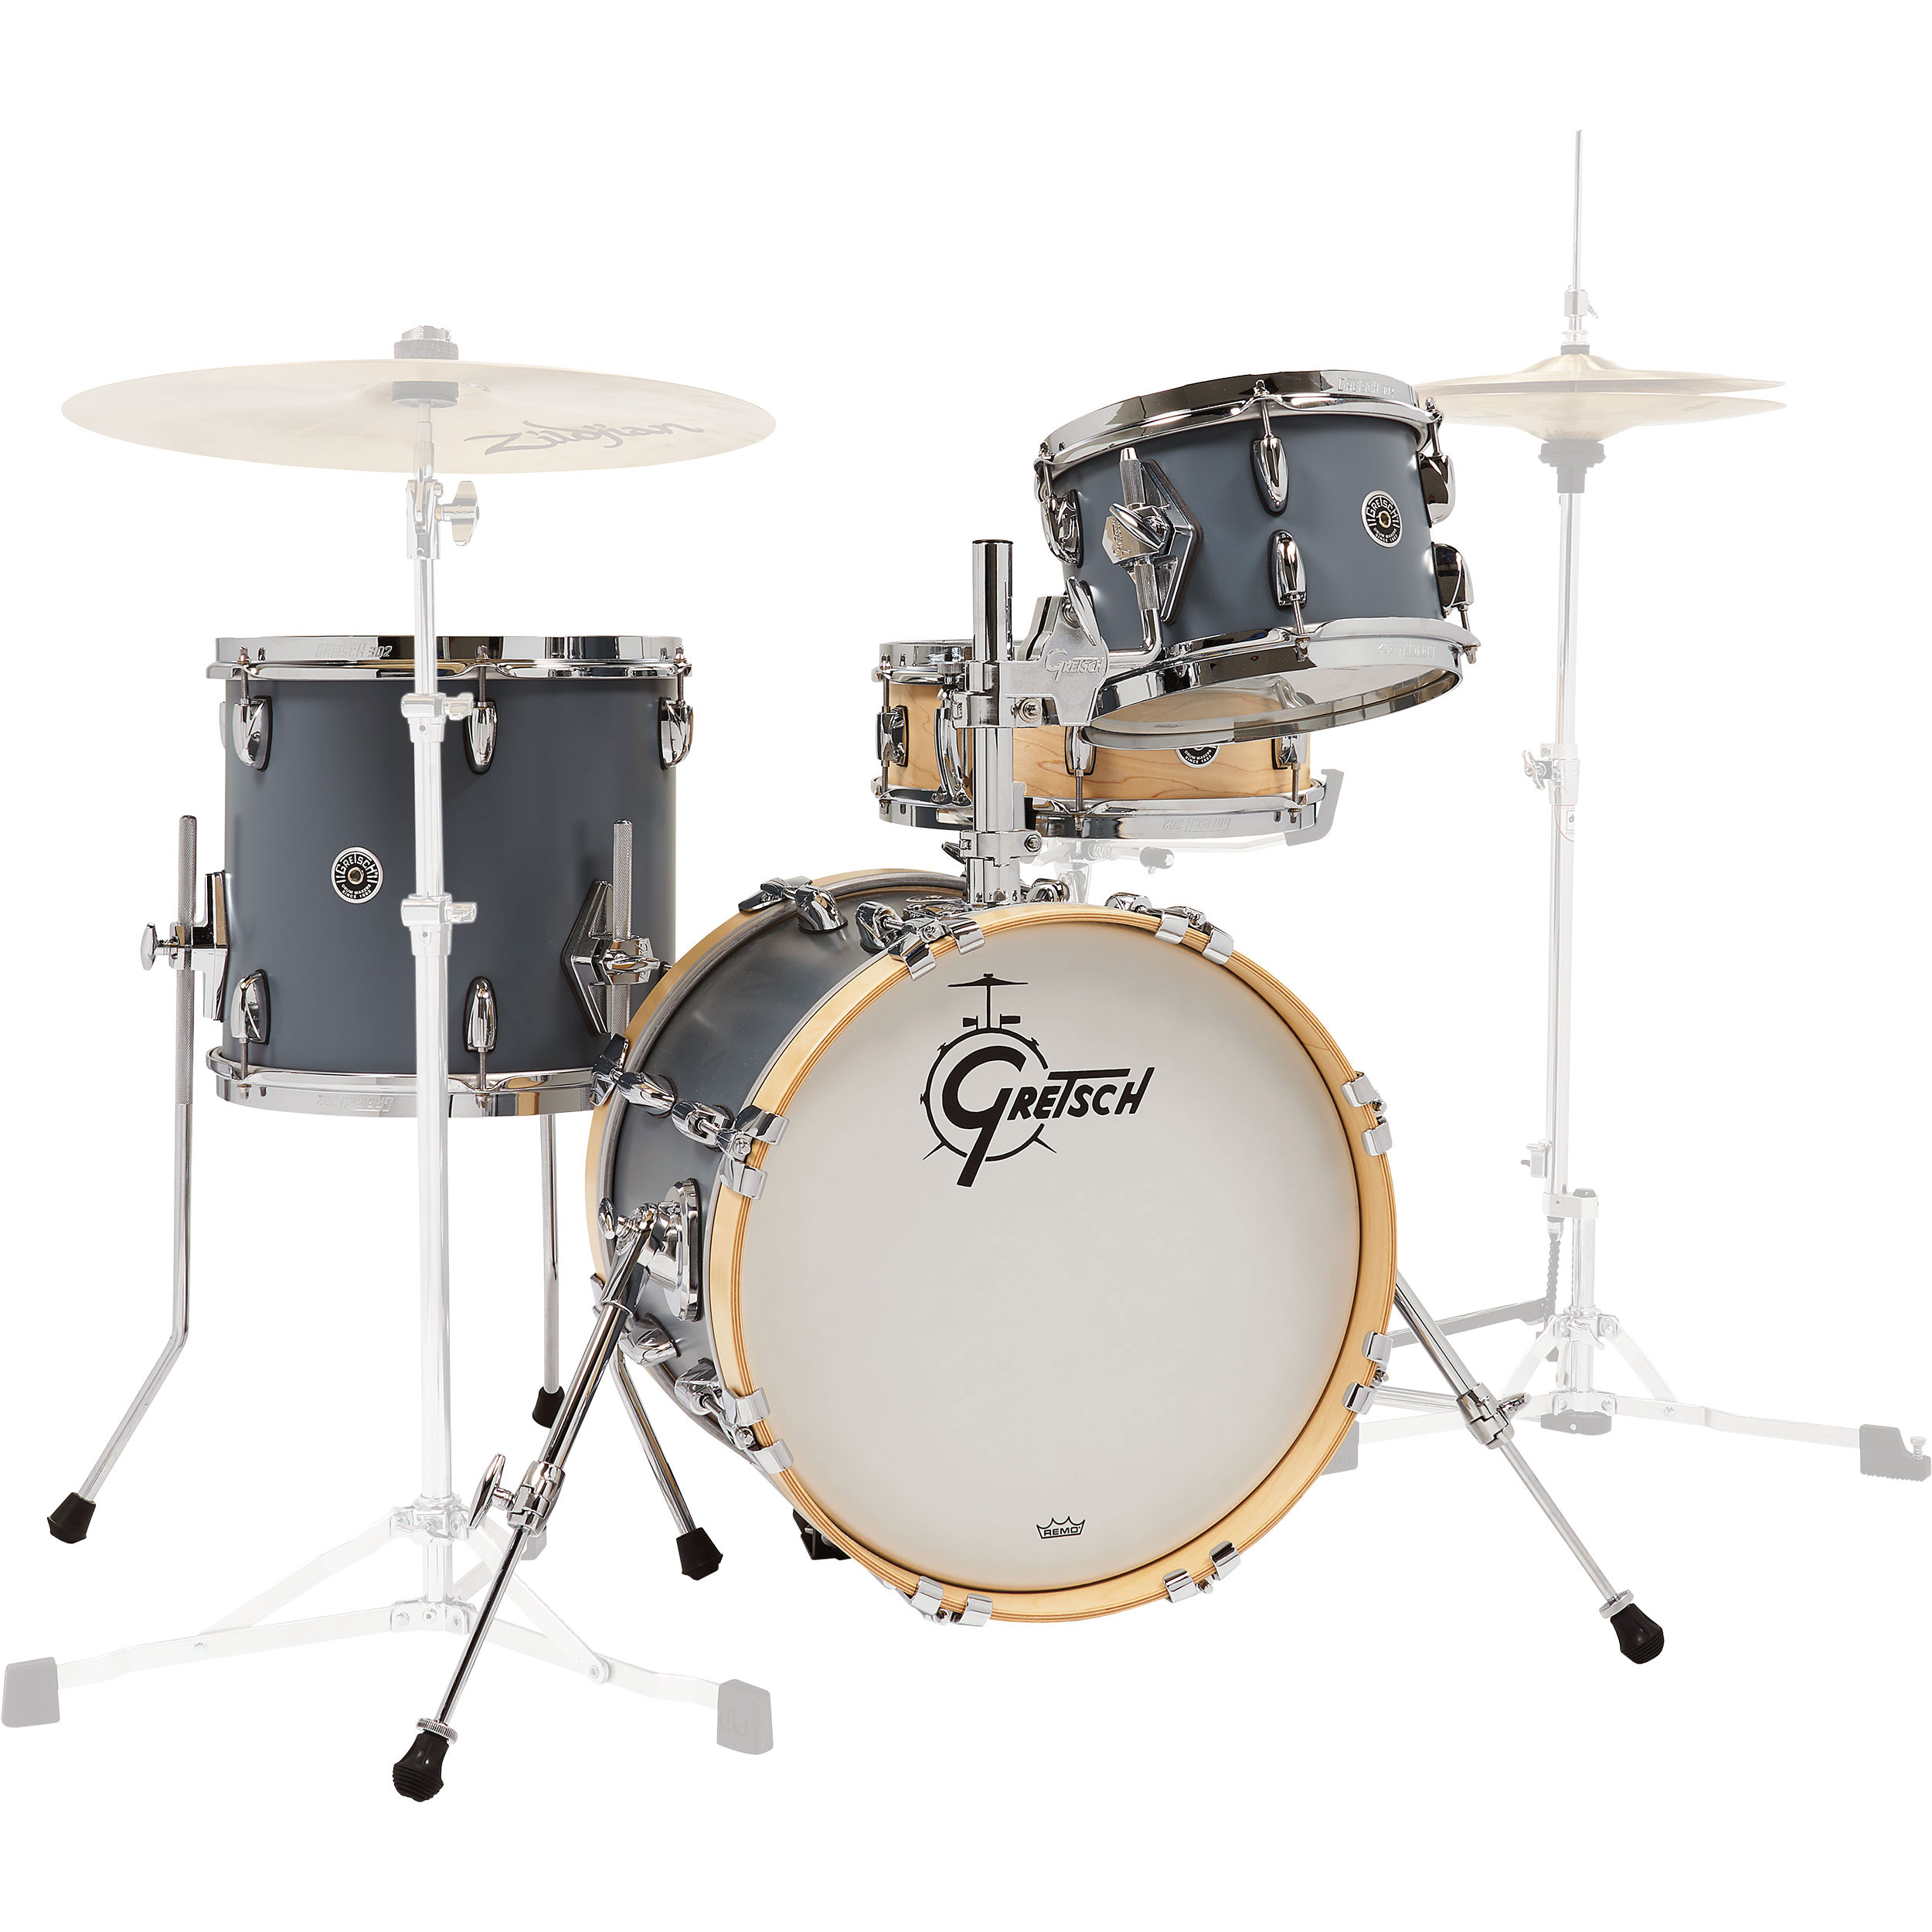 gretsch brooklyn micro kit drum set shell pack in satin gray gb m264sg. Black Bedroom Furniture Sets. Home Design Ideas